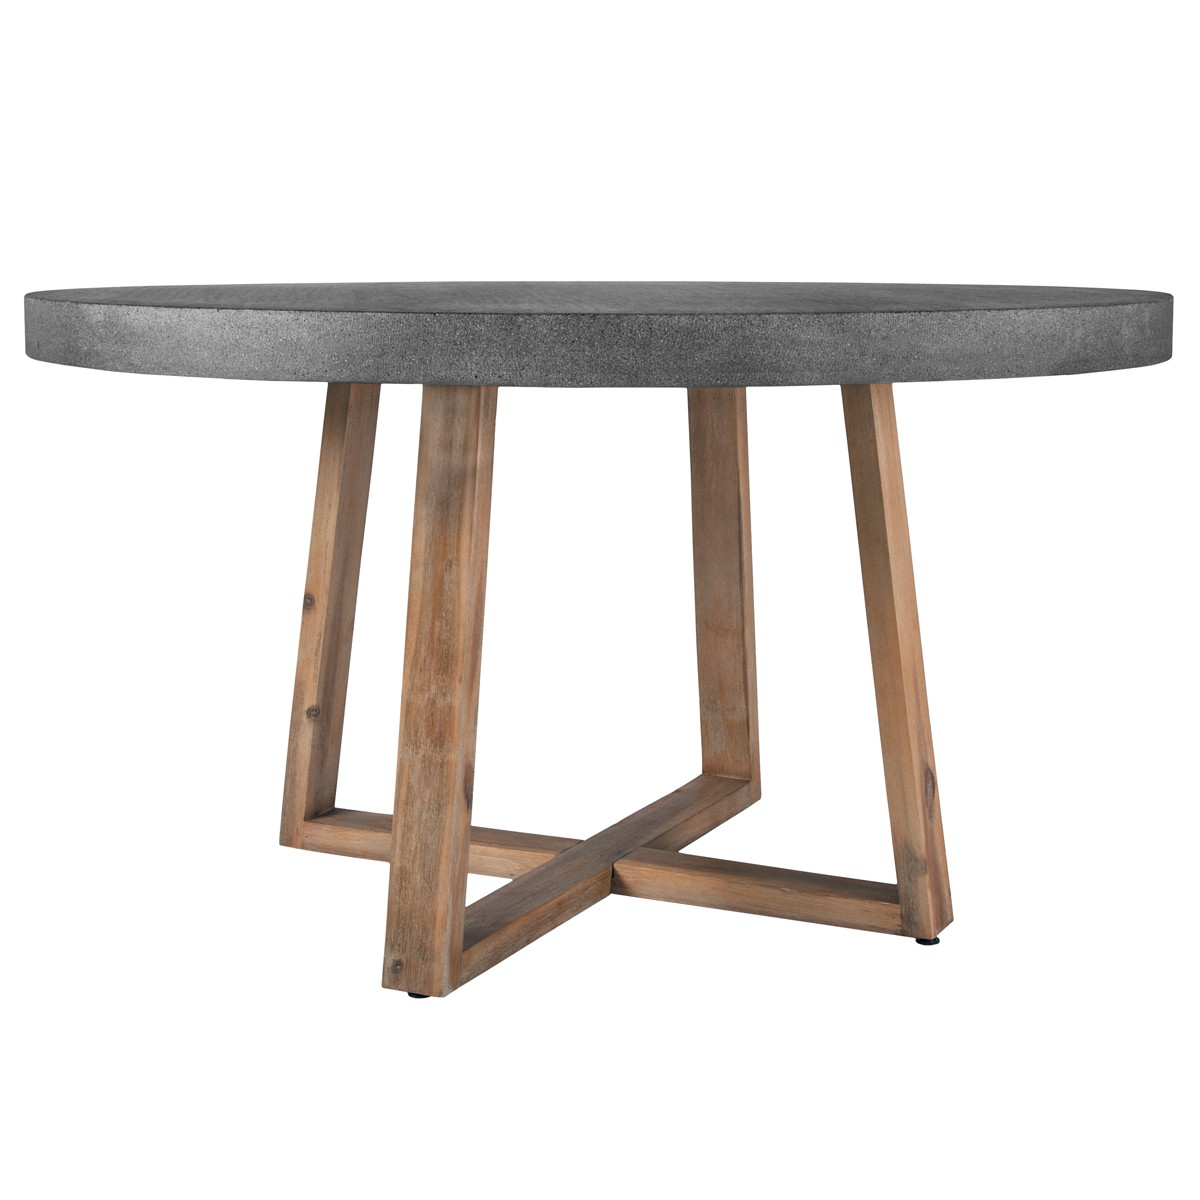 Table ronde r sine et bois 140 cm koya design for Table exterieur largeur 50